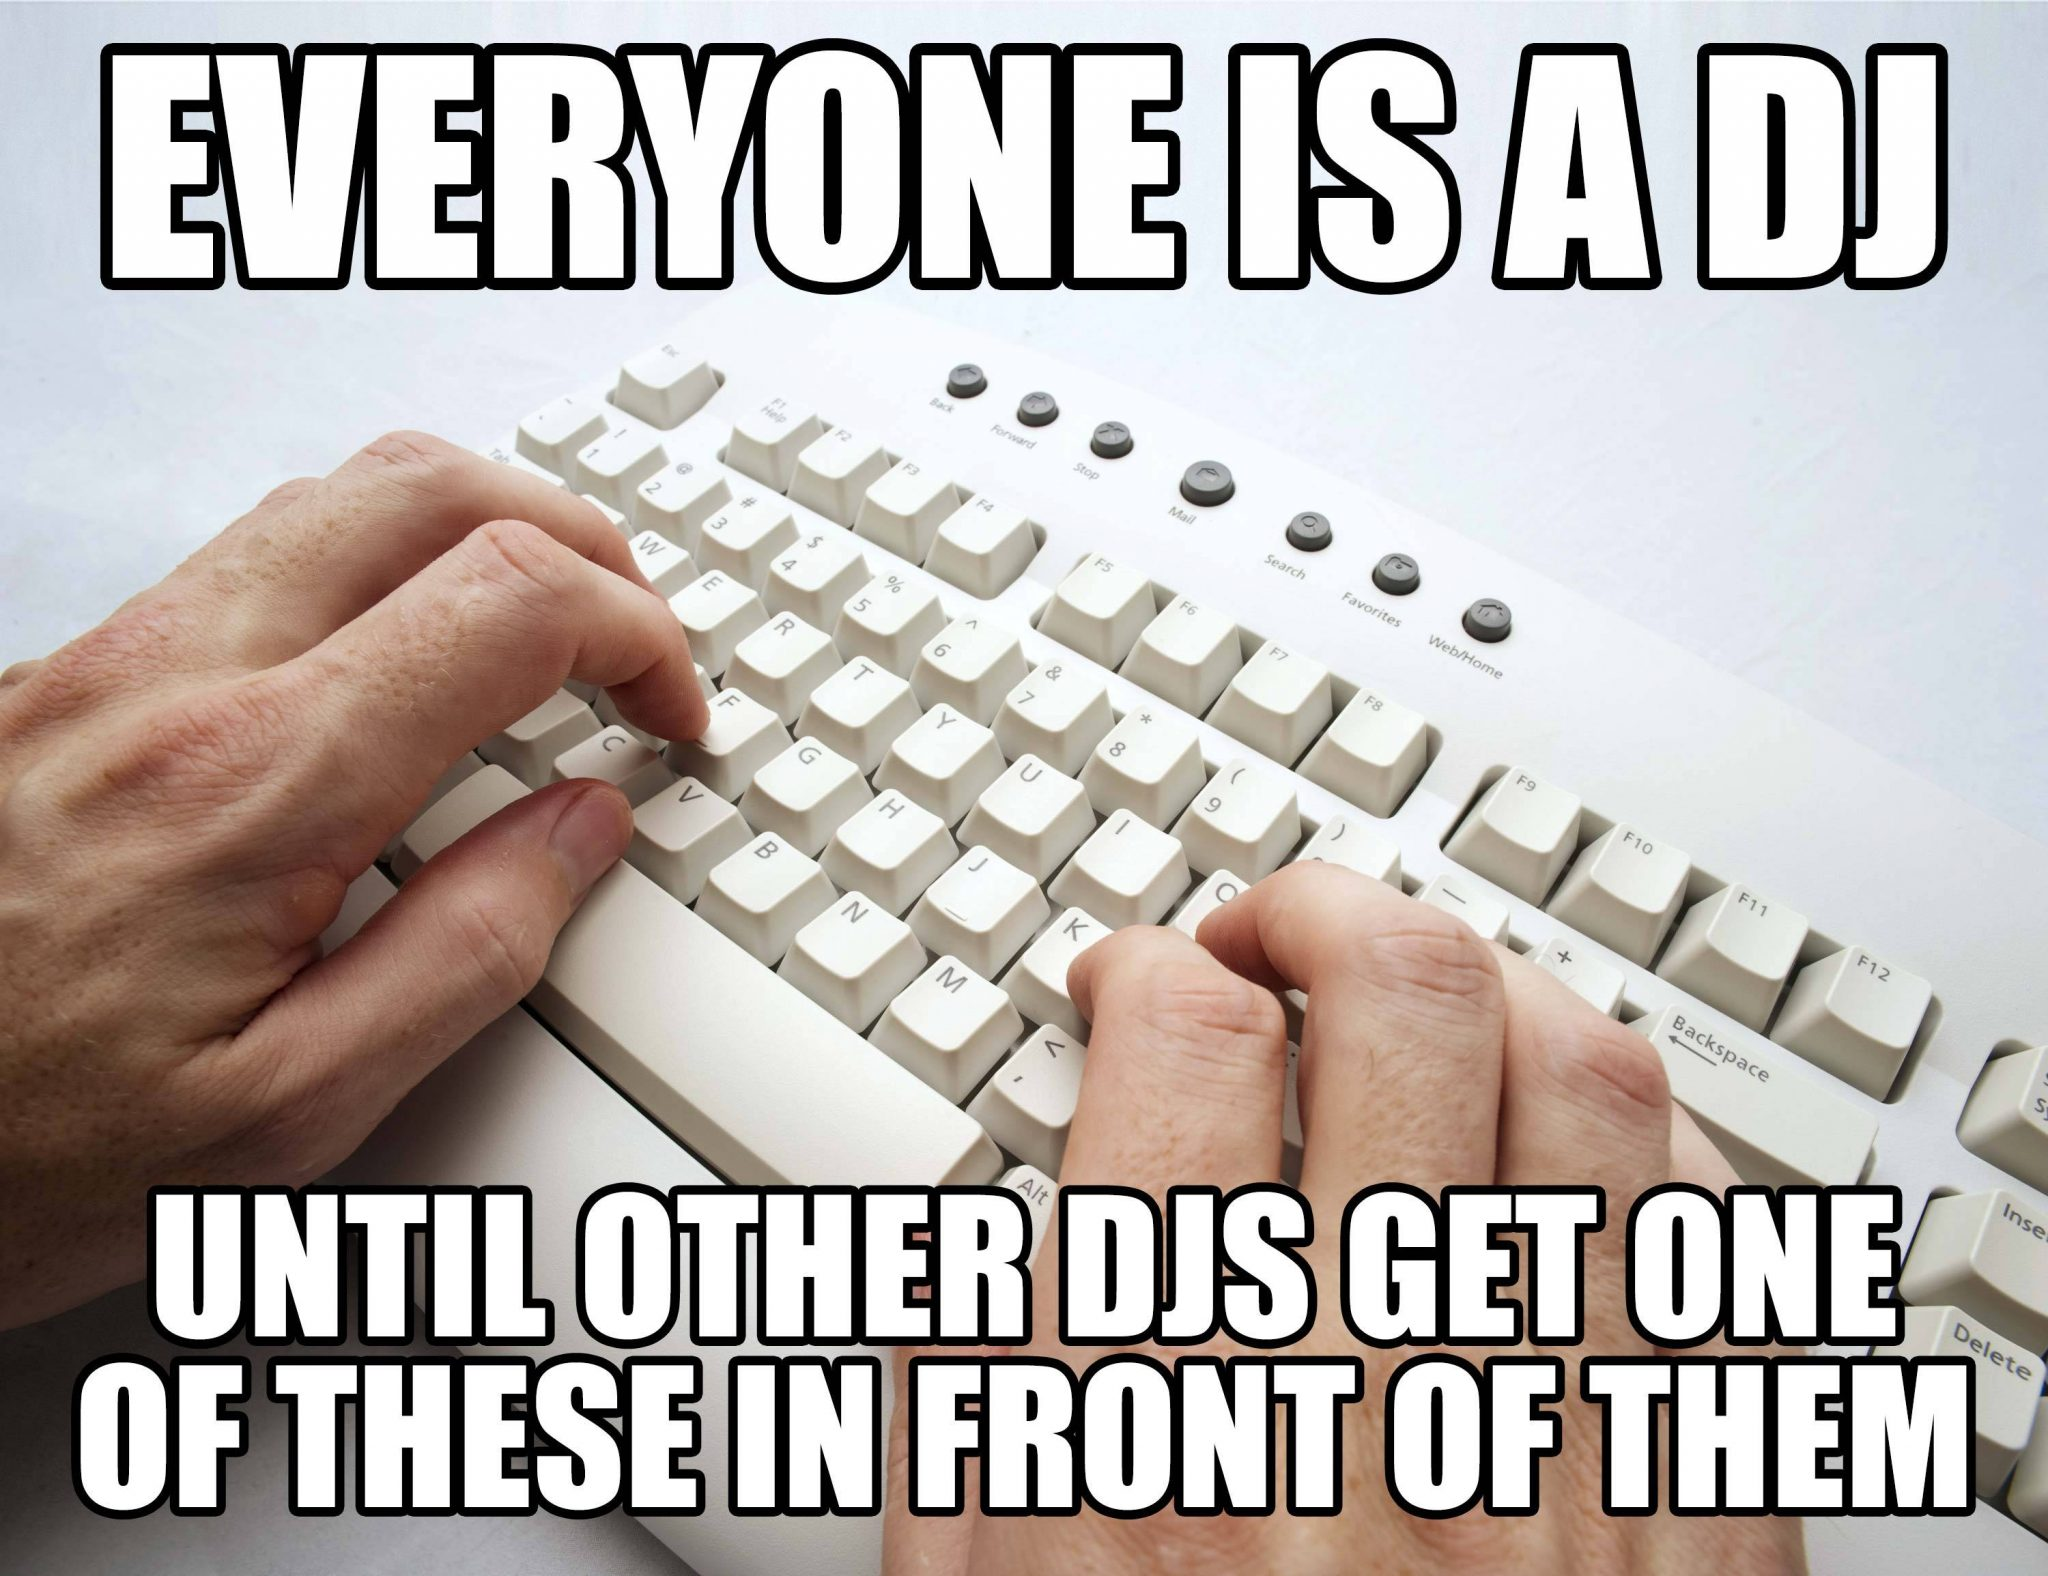 Memebusting — even without turntables, you're still a DJ 2